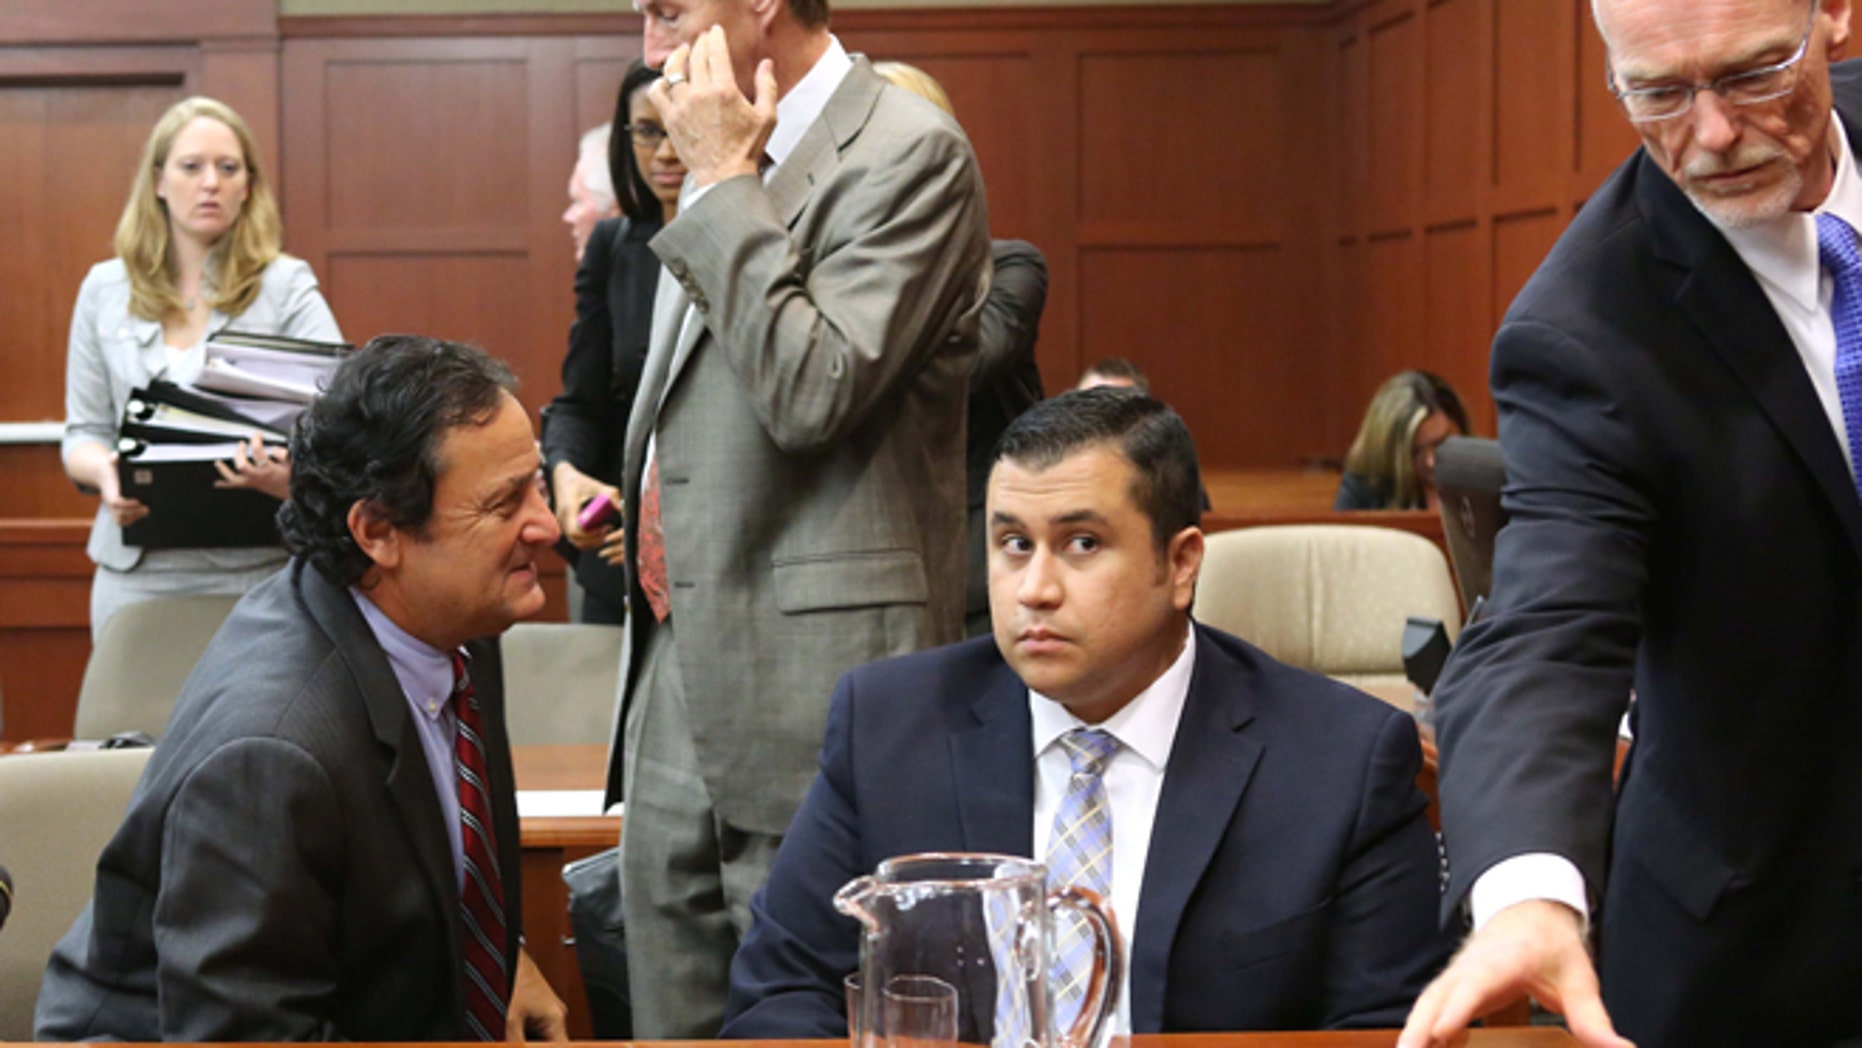 Defense attorney Mark O'Mara, second from left, jury consultant Robert Hirschhorn, left, George Zimmerman and co-counsel Don West, right, chat during a recess in Seminole circuit court during Zimmerman's trial, in Sanford, Fla., Tuesday, June 11, 2013. Zimmerman has been charged with second-degree murder for the 2012 shooting death of Trayvon Martin.(AP Photo/Orlando Sentinel, Joe Burbank, Pool)